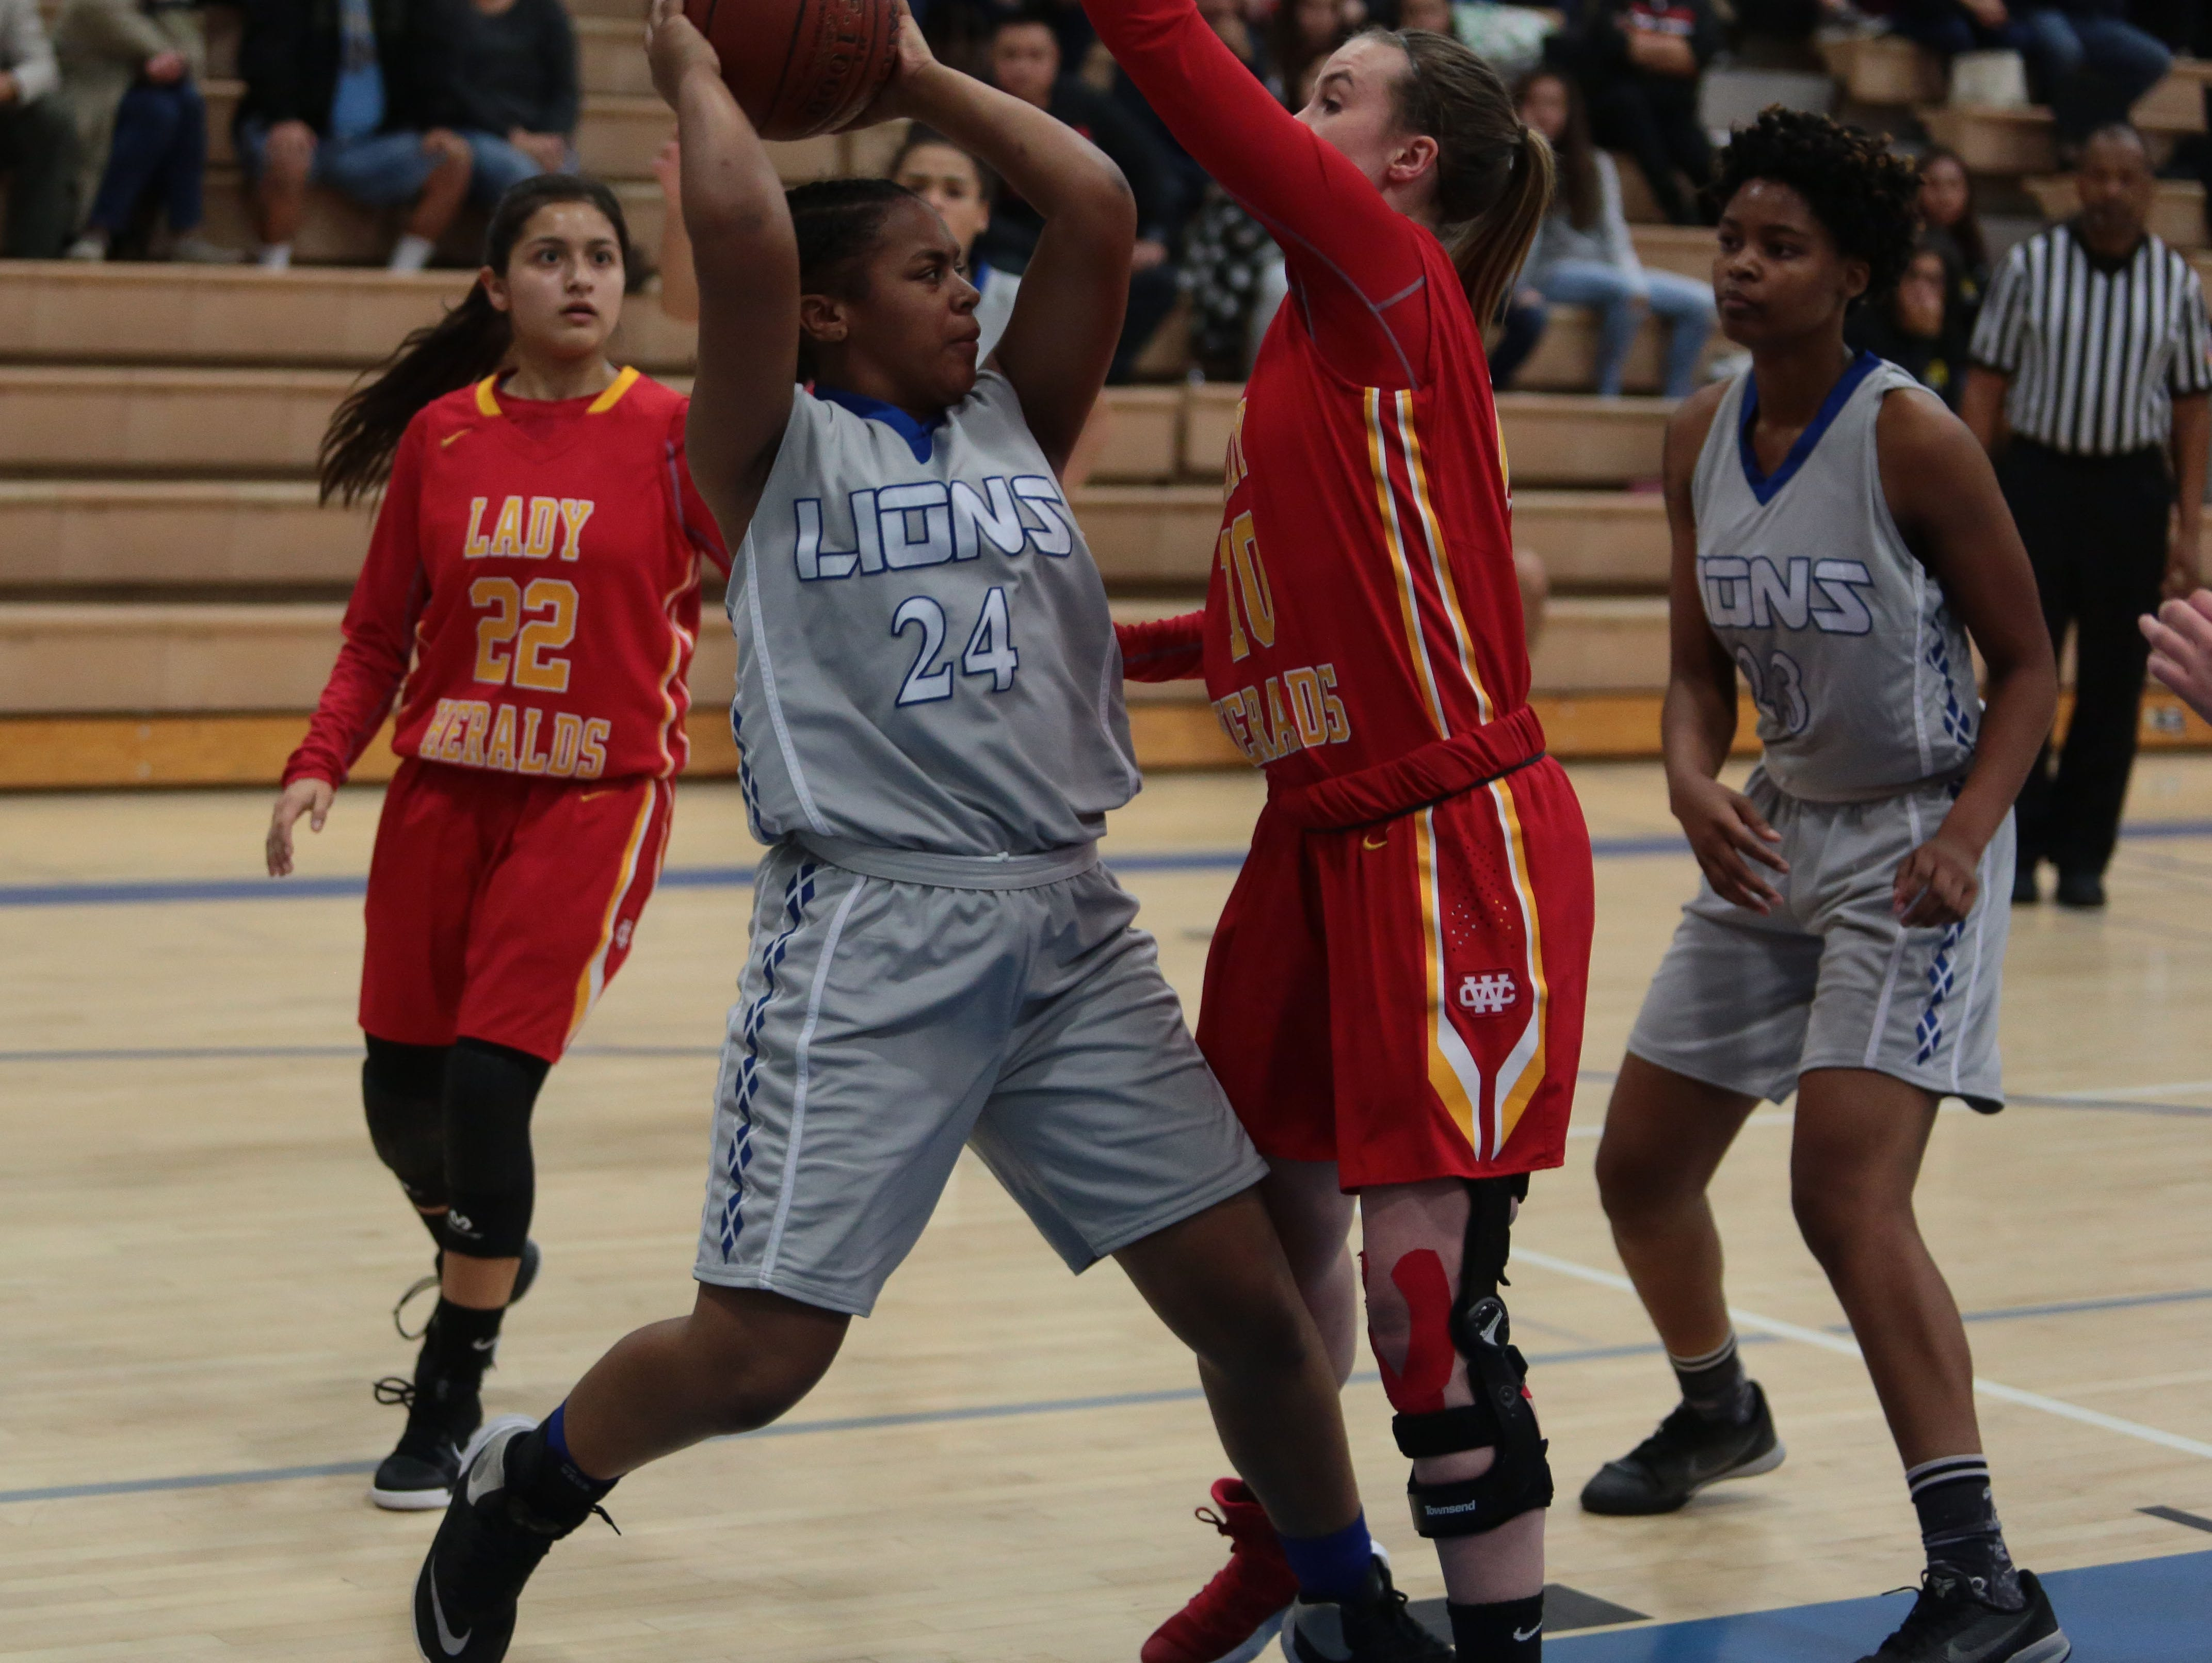 Cathedral City's Maijoy Wooten in action against Whittier Christian on Saturday, February 18, 2017 in Cathedral City.